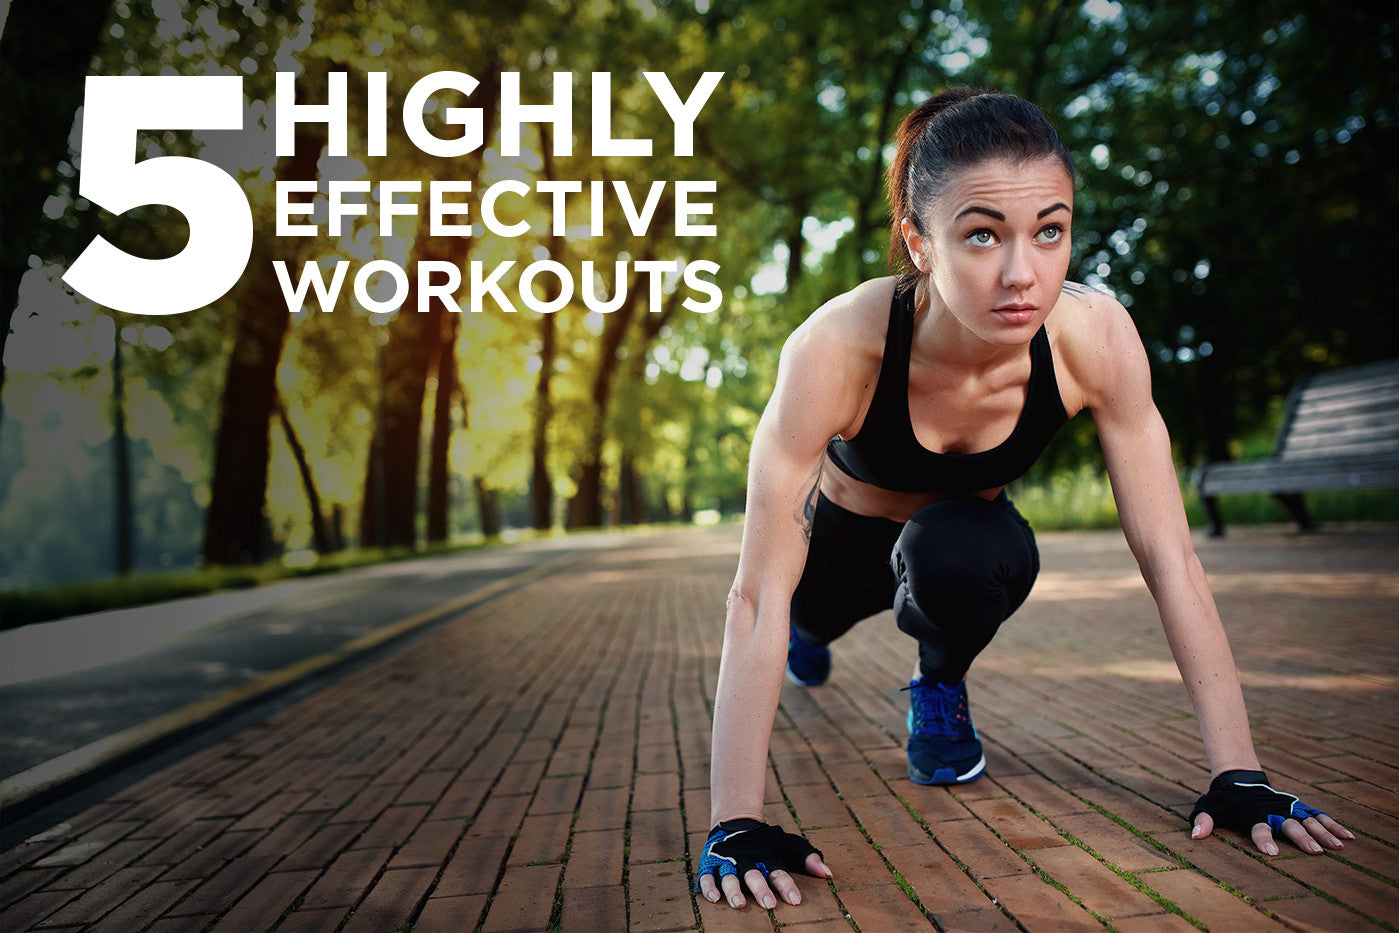 5 Highly Effective Workouts